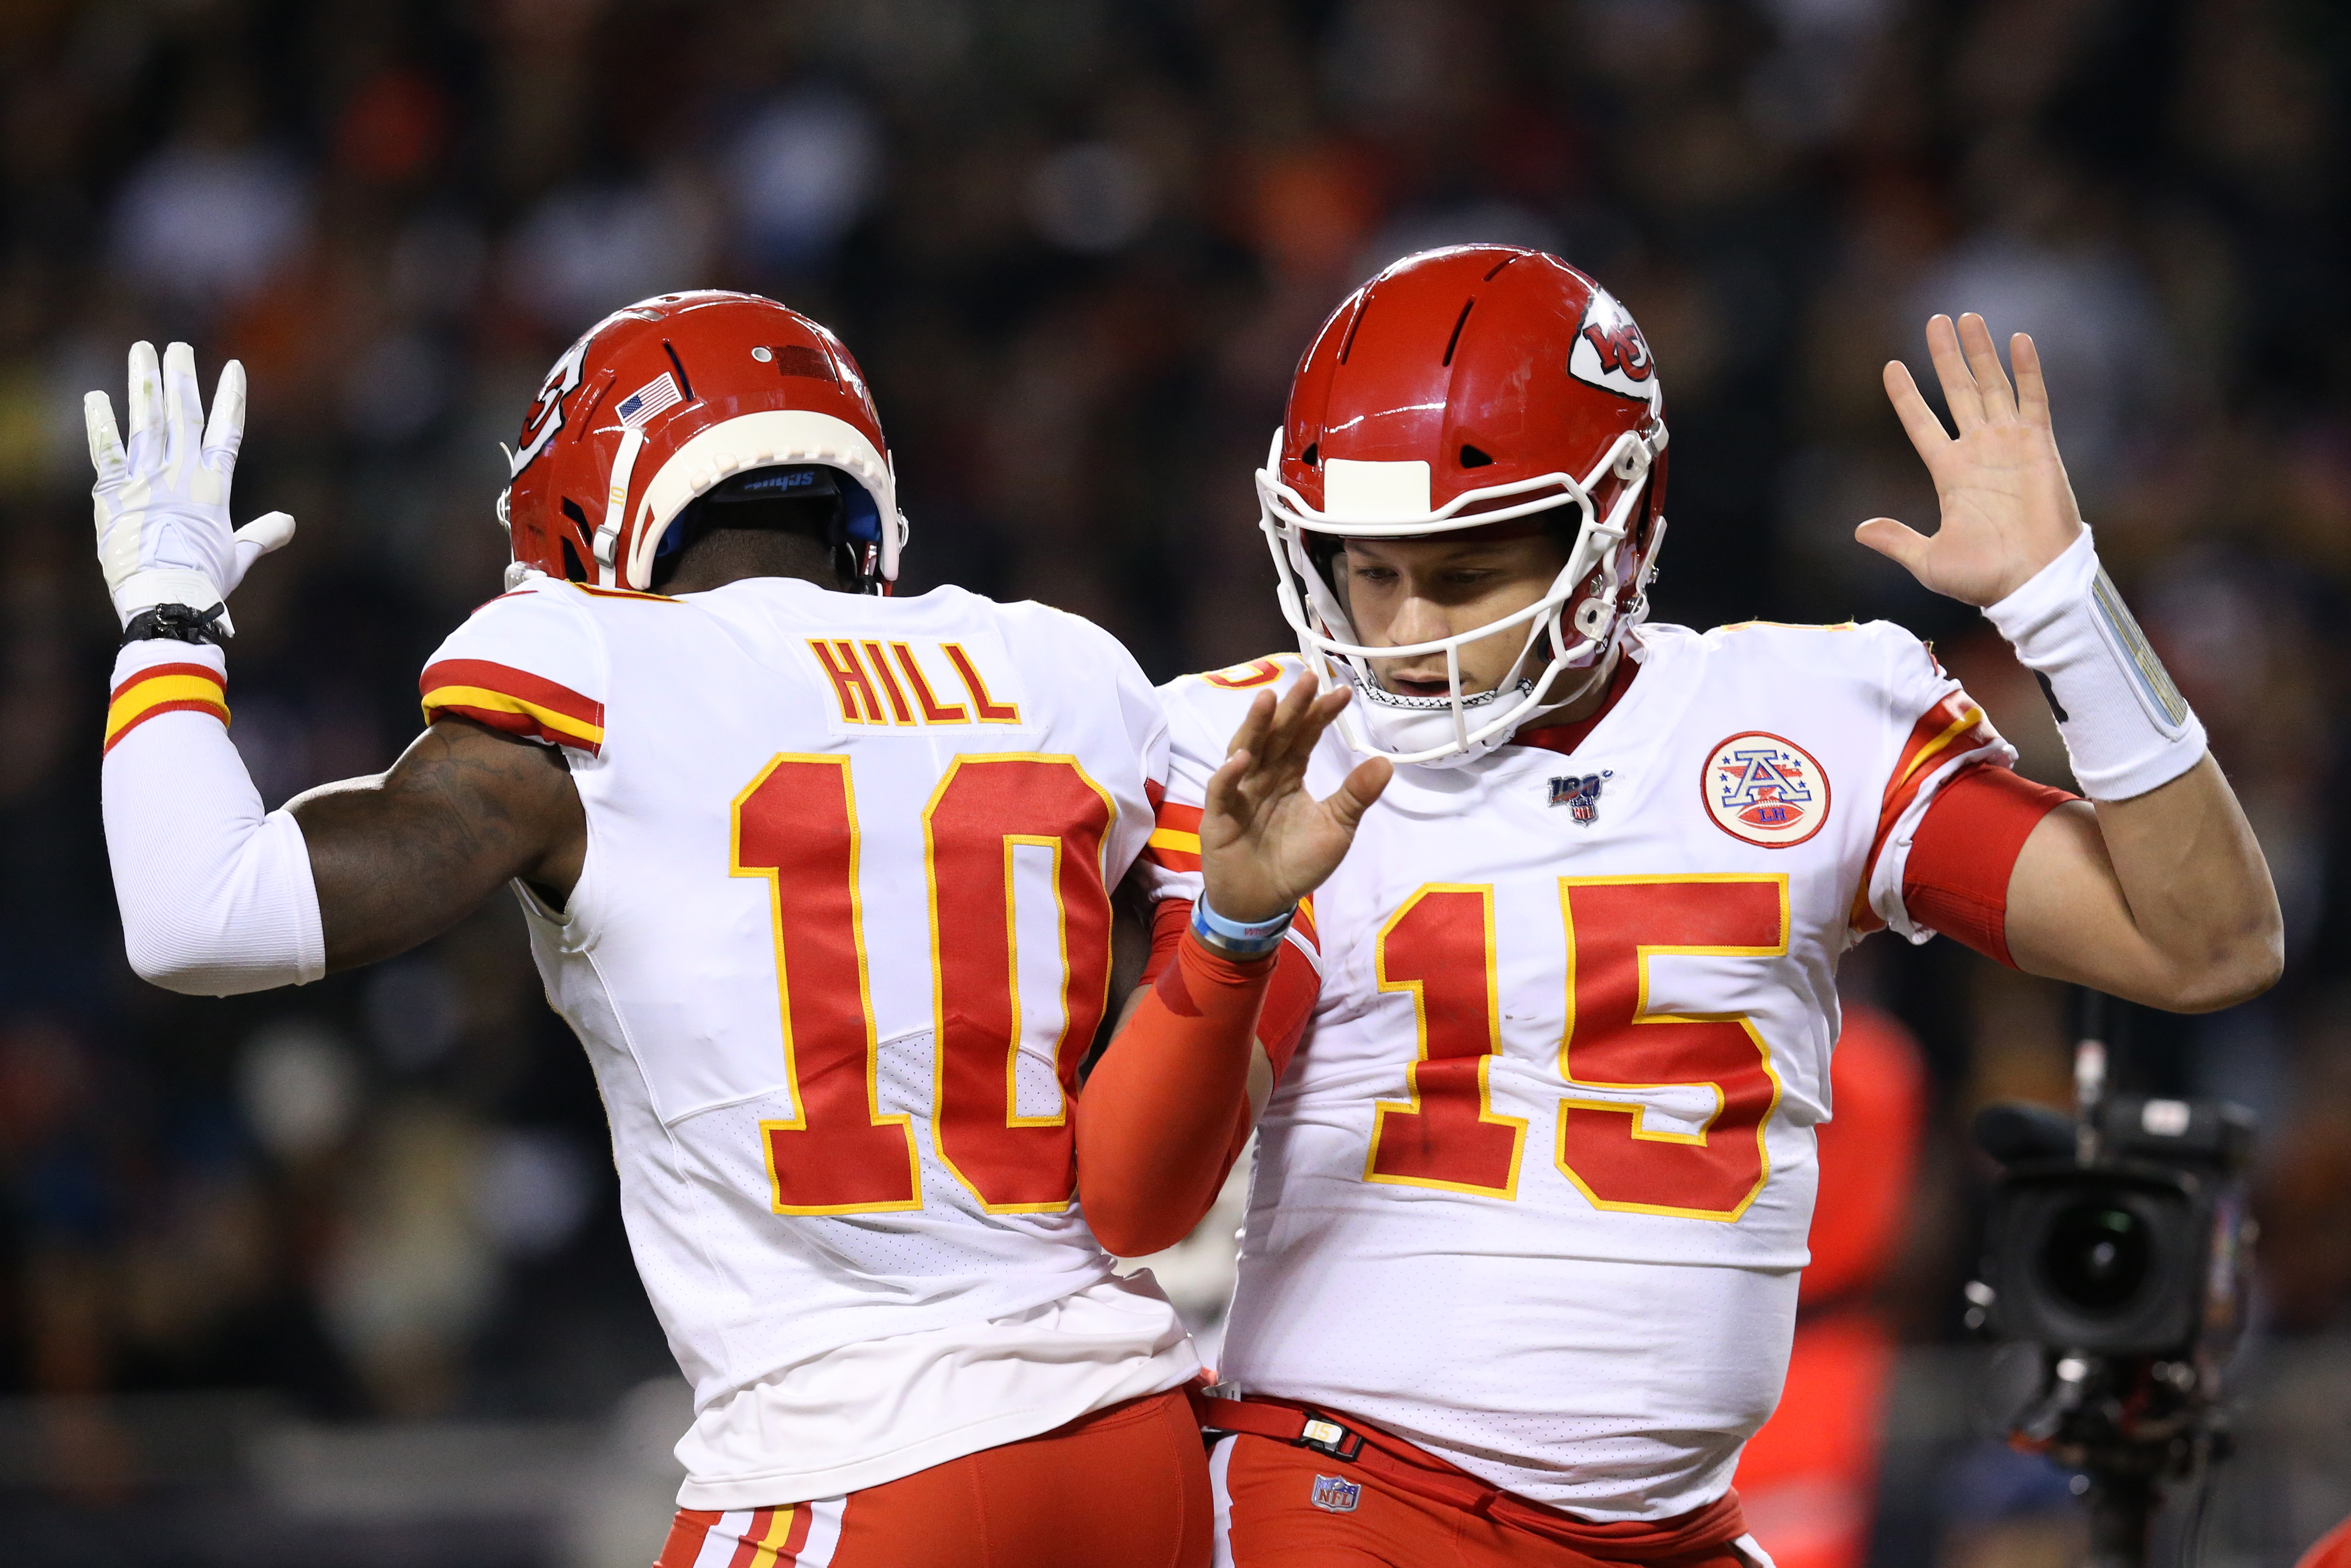 Quarterback Patrick Mahomes #15 of the Kansas City Chiefs celebrates with teammate wide receiver Tyreek Hill #10 after scoring a touchdown against the Chicago Bears in the first quarter of the game at Soldier Field on December 22, 2019 in Chicago, Illinois.